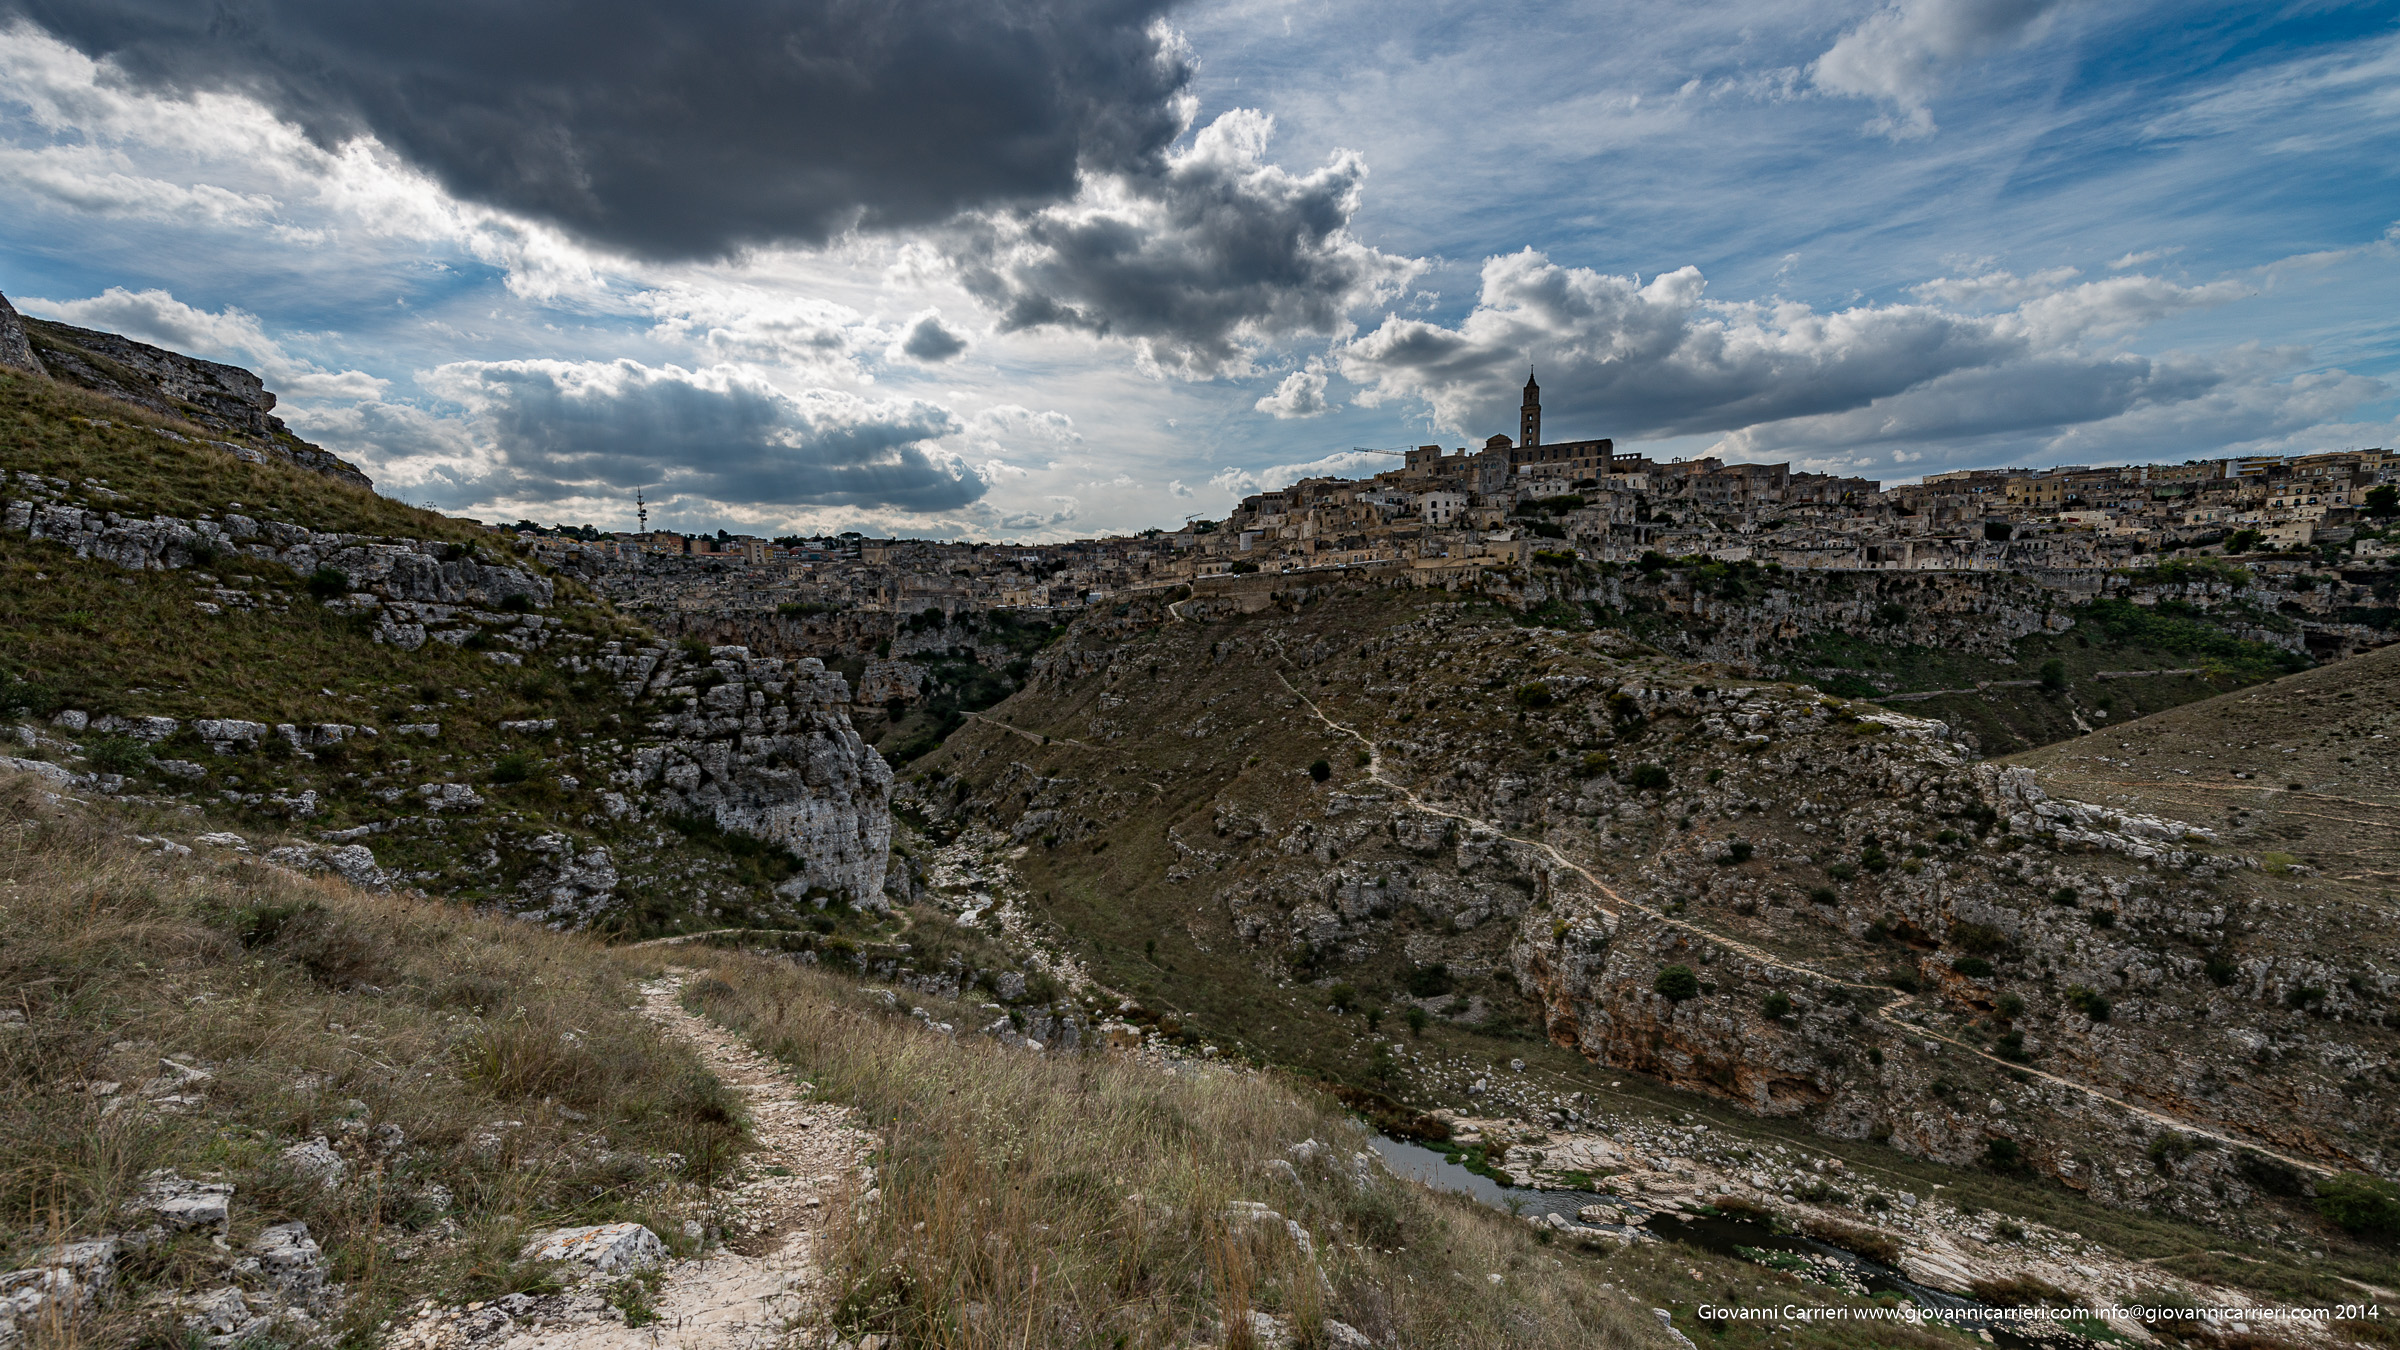 The city and the ravine of Matera